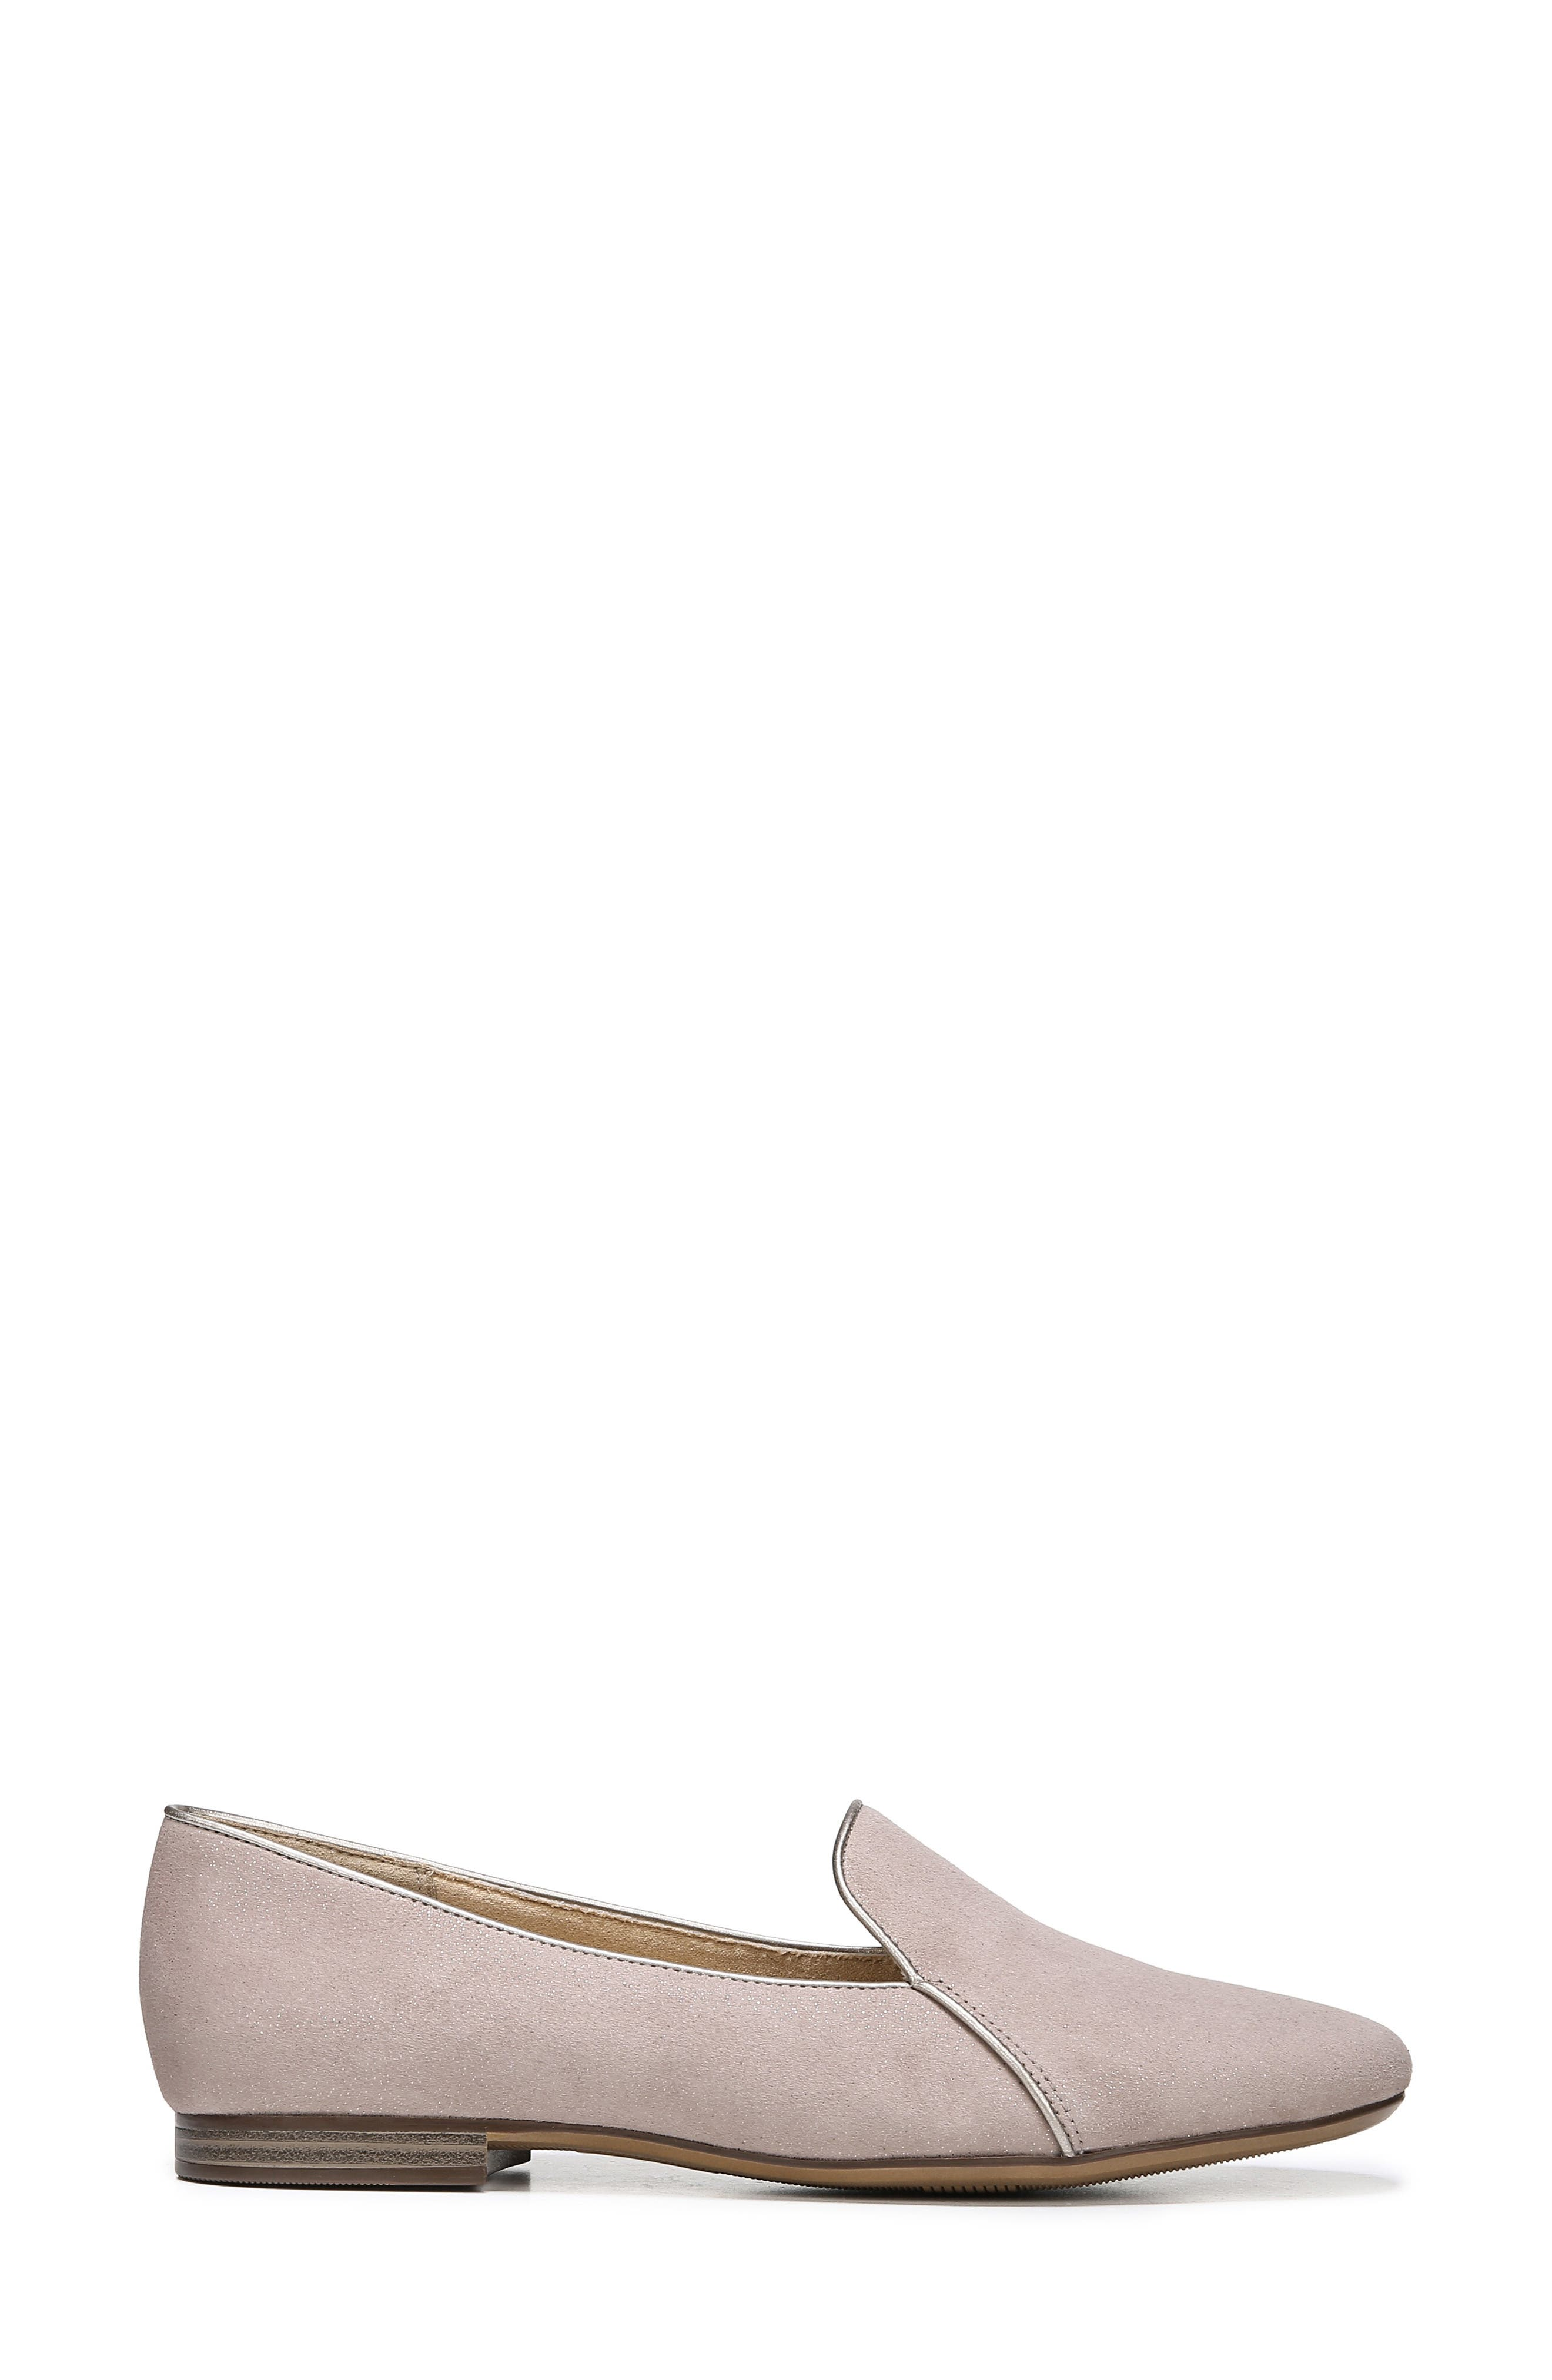 Emiline 2 Loafer,                             Alternate thumbnail 3, color,                             TAUPE GLITTER DUST SUEDE